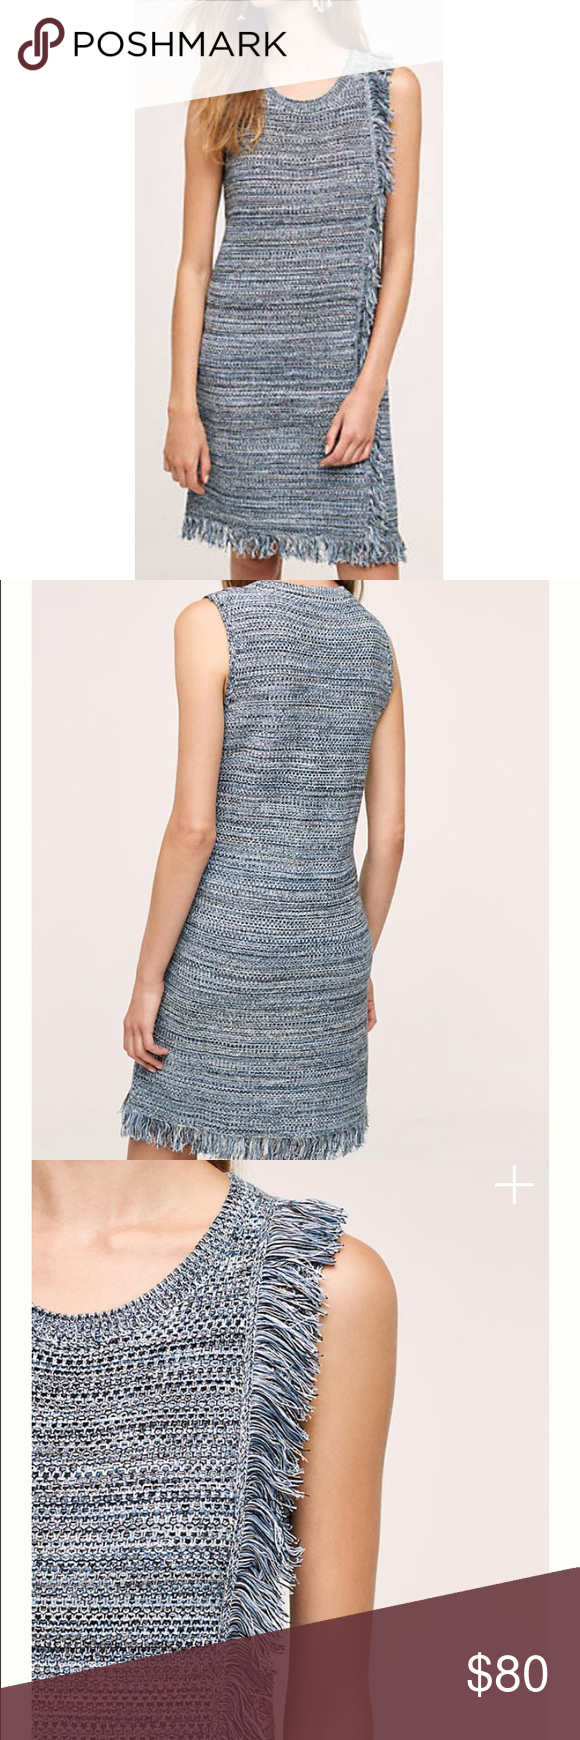 27c634d00a anthro holding horses sweater dress Beautiful fringed sweater dress by Holding  Horses from Anthropologie. Blue